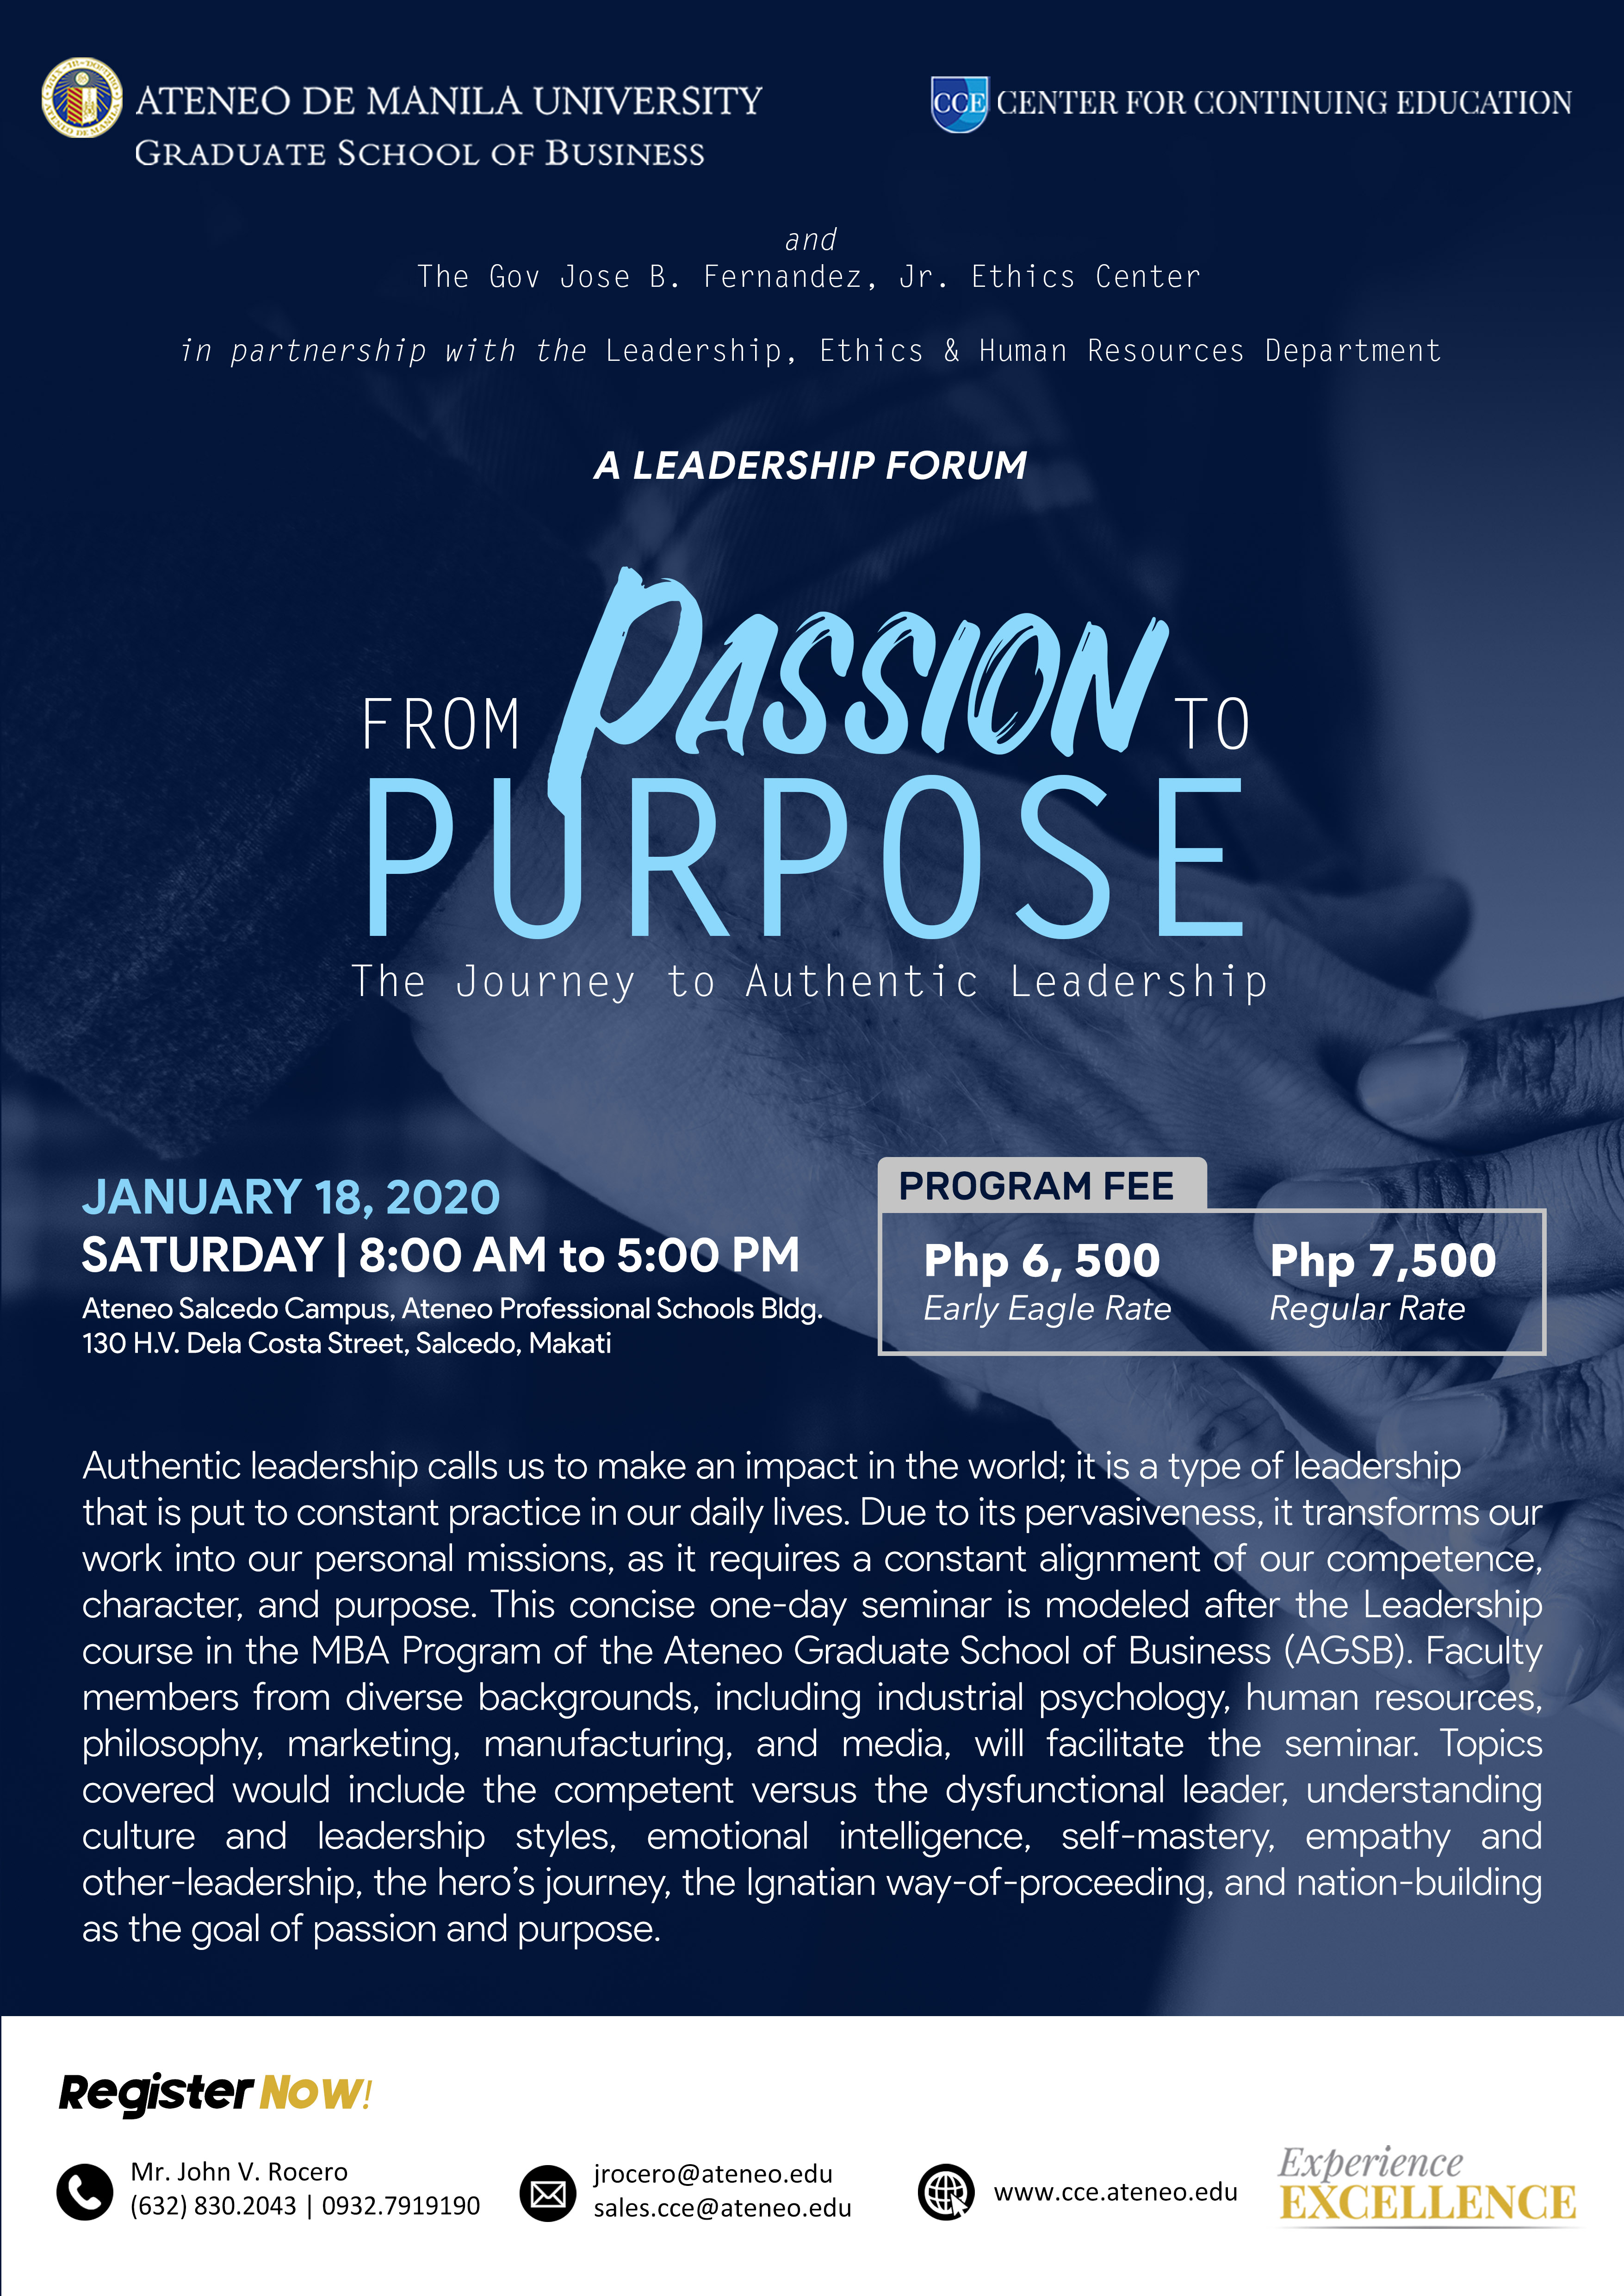 From Passion to Purpose The Journey to Authentic Leadership copy